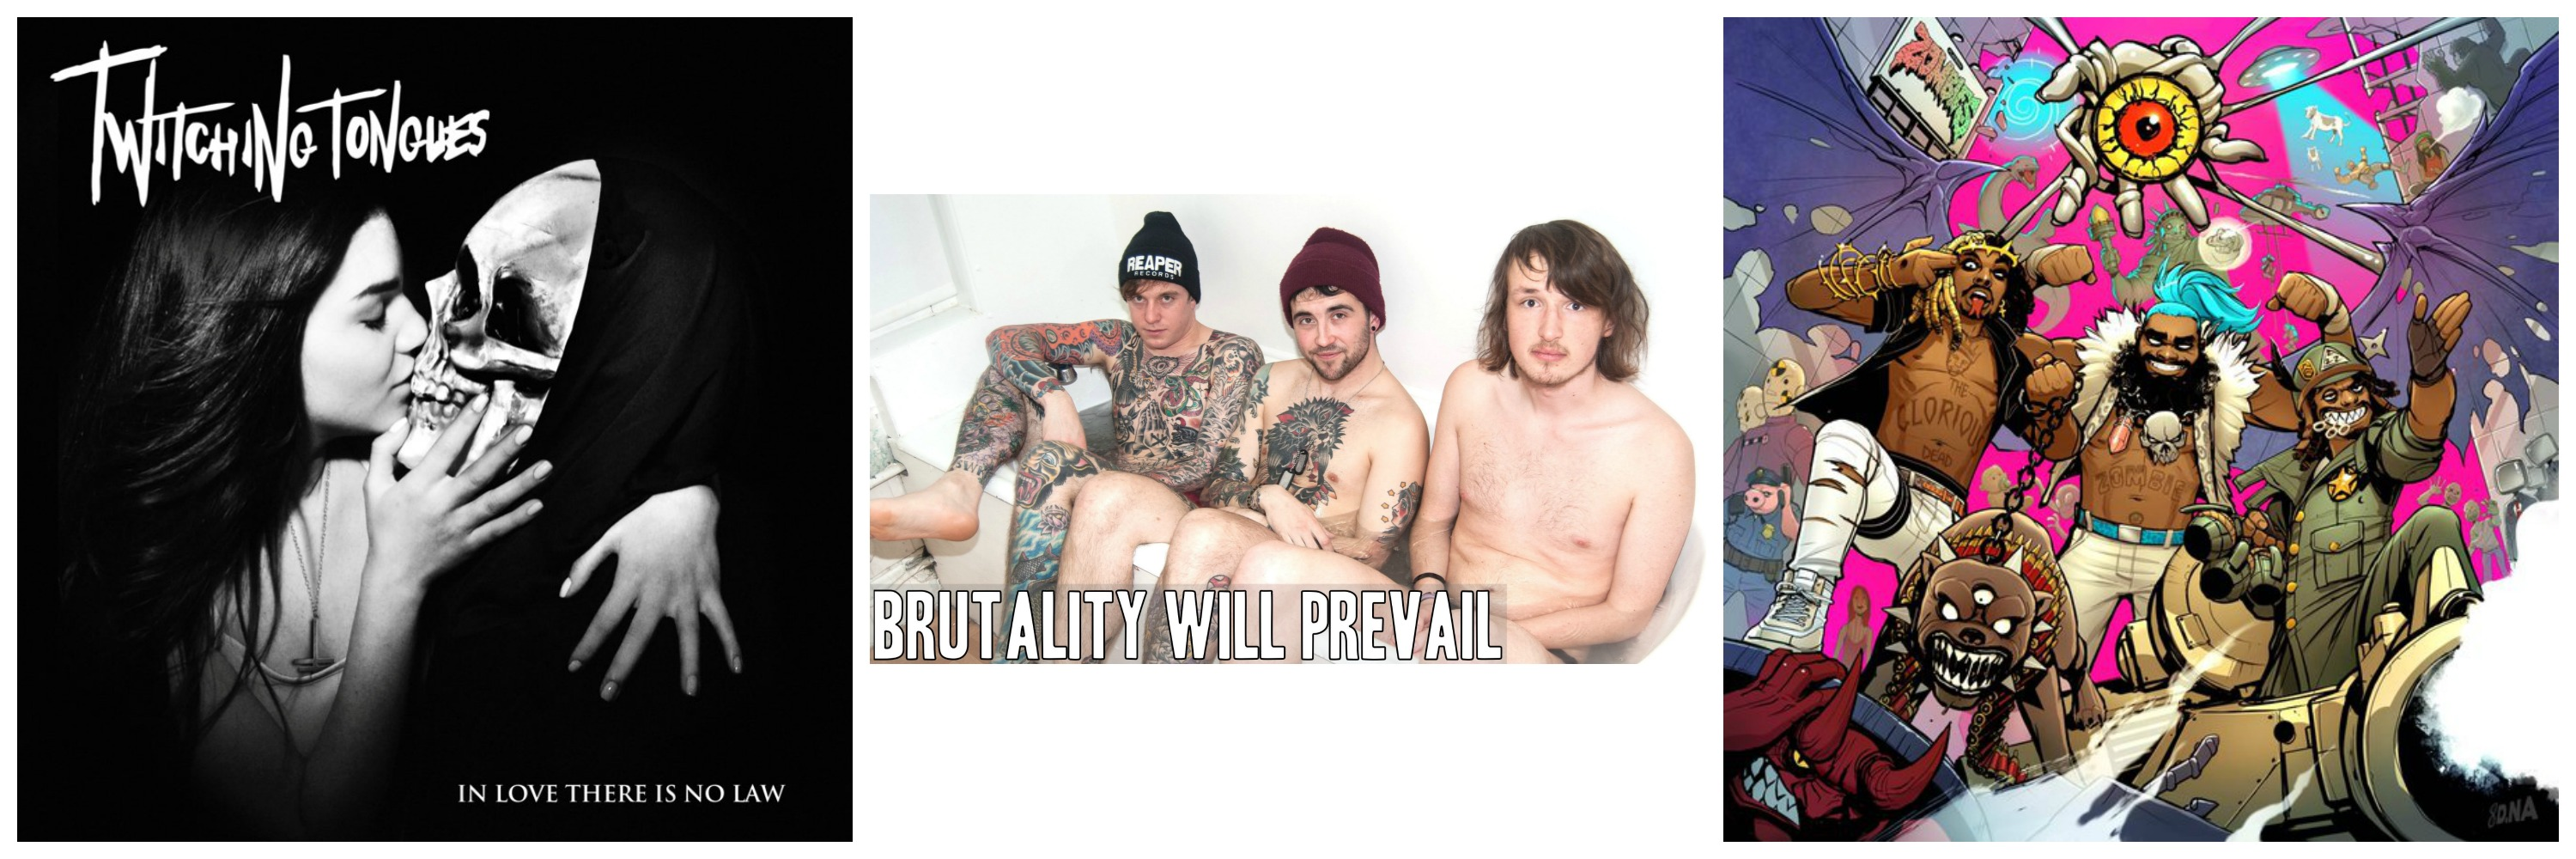 twitching tongues brutality will prevail flatbush zombies